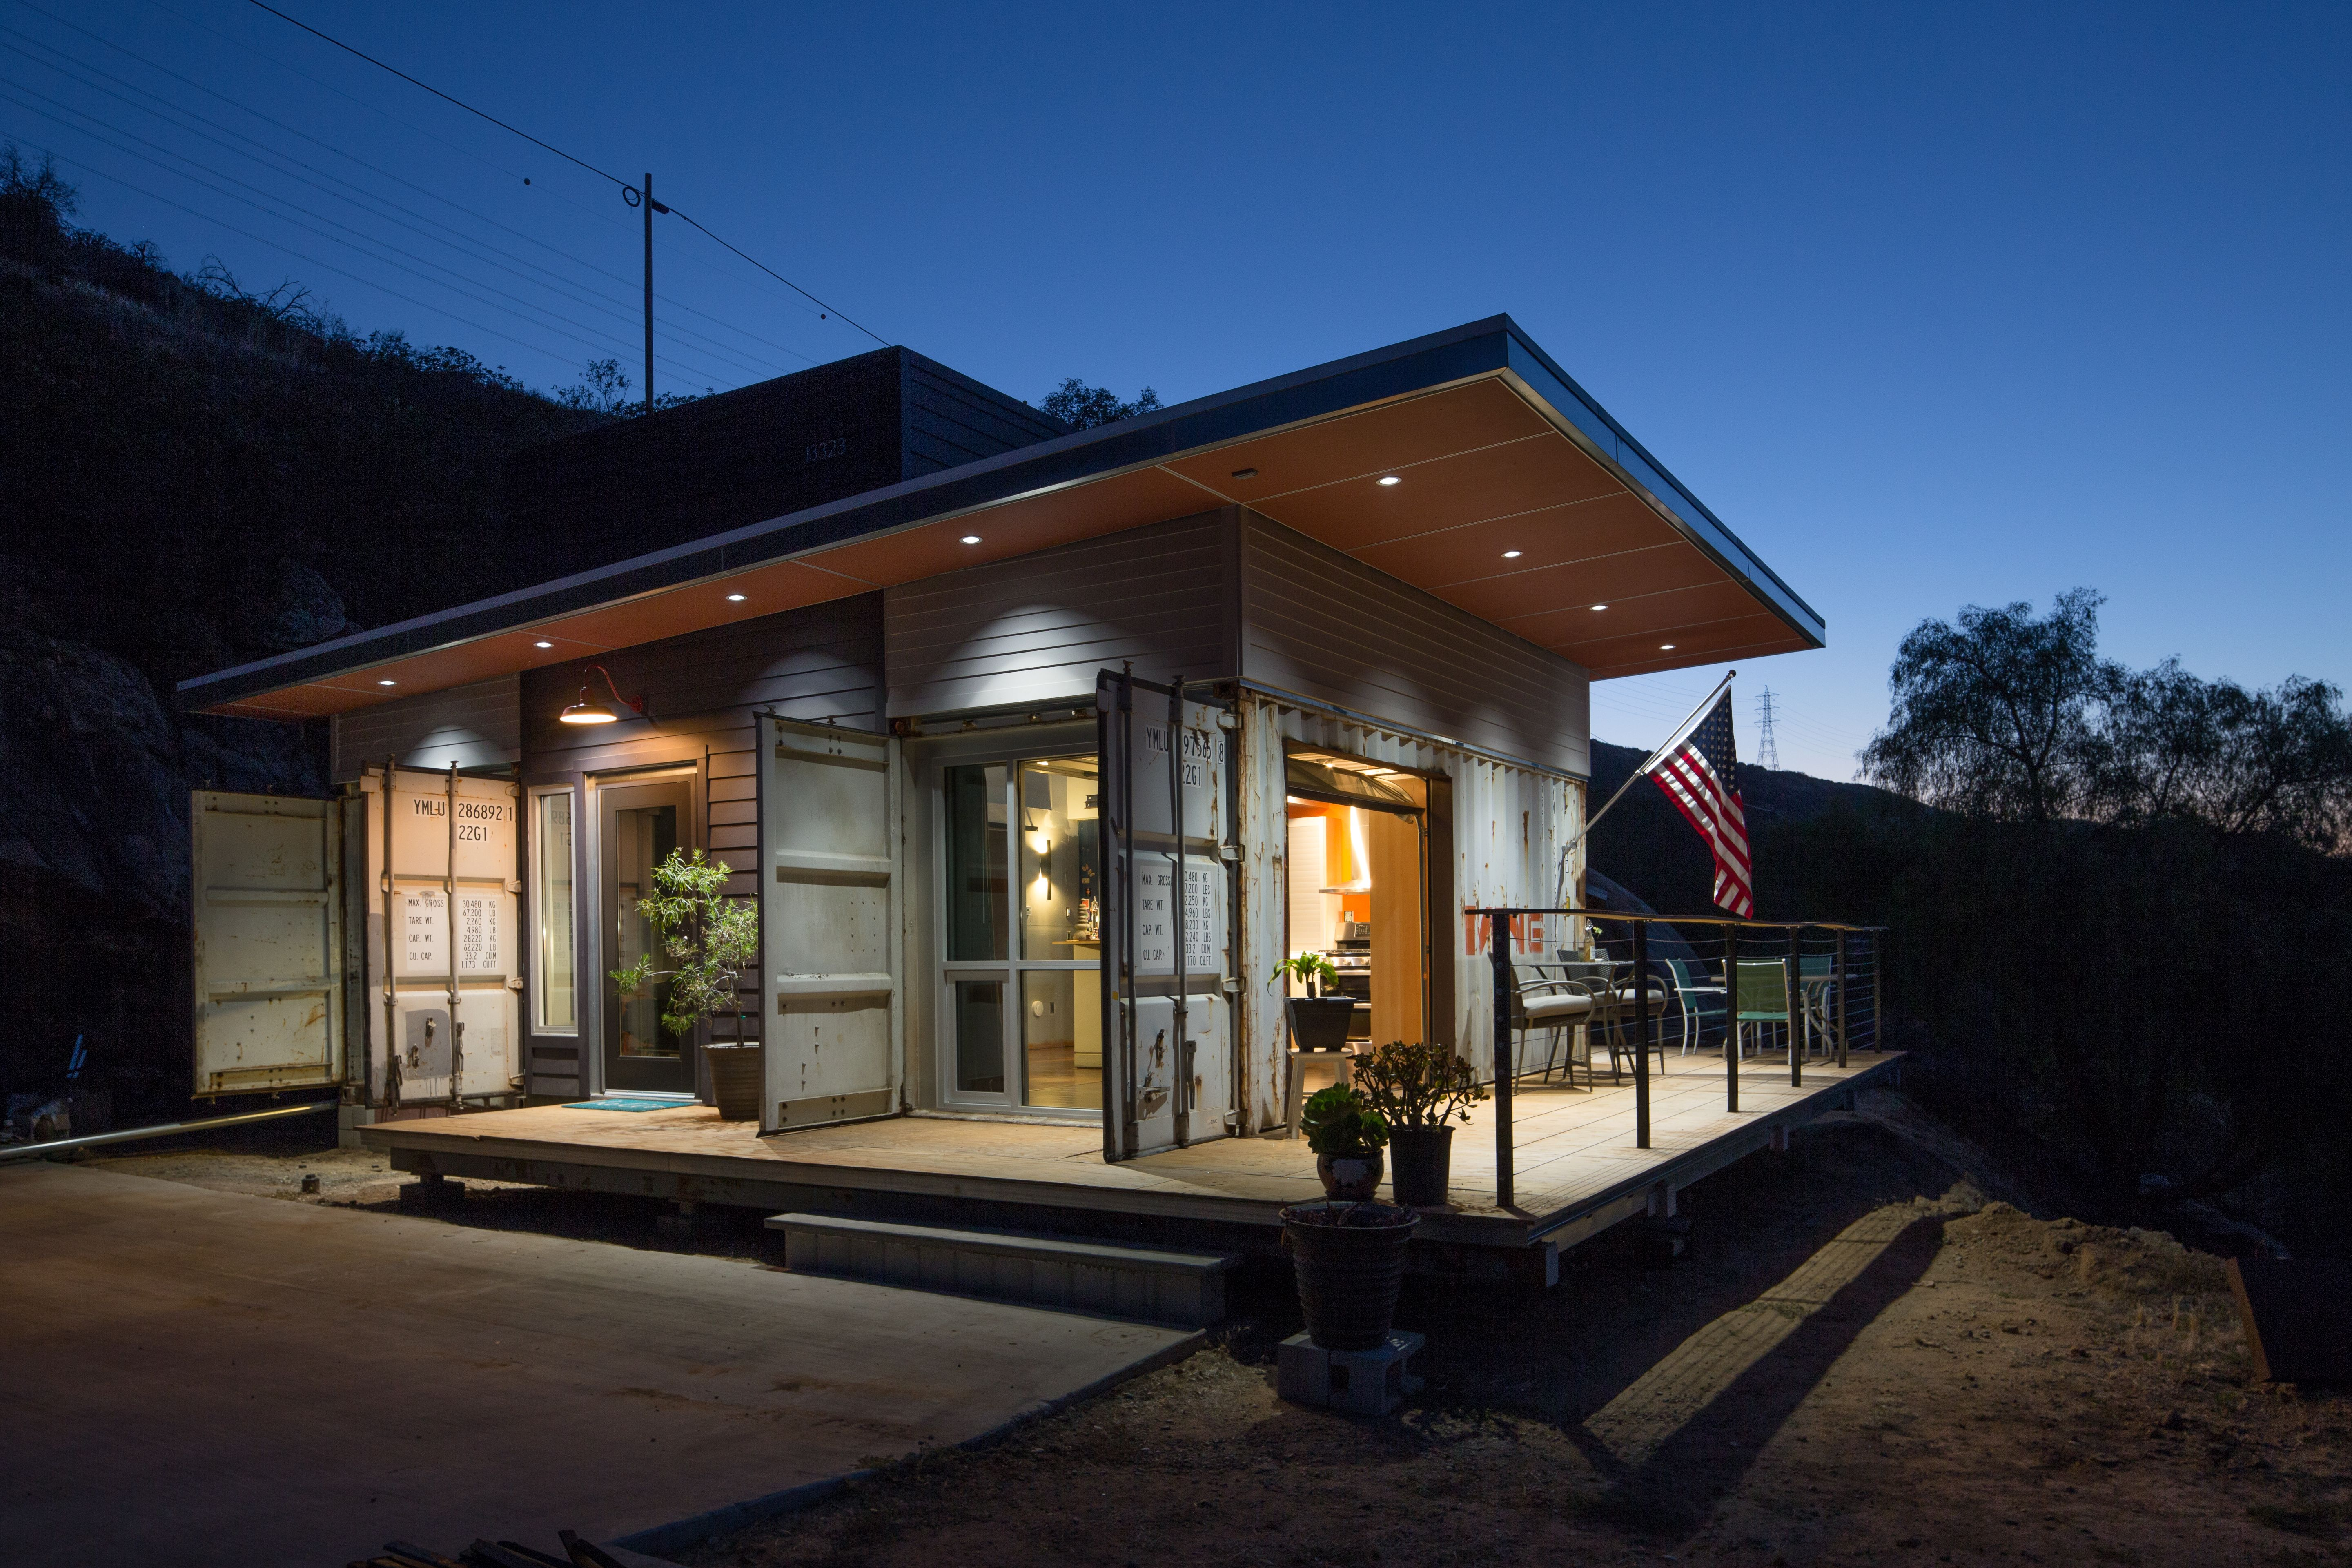 Container Haus Park A Rustic Shipping Container Home Built On A Shoestring Budget